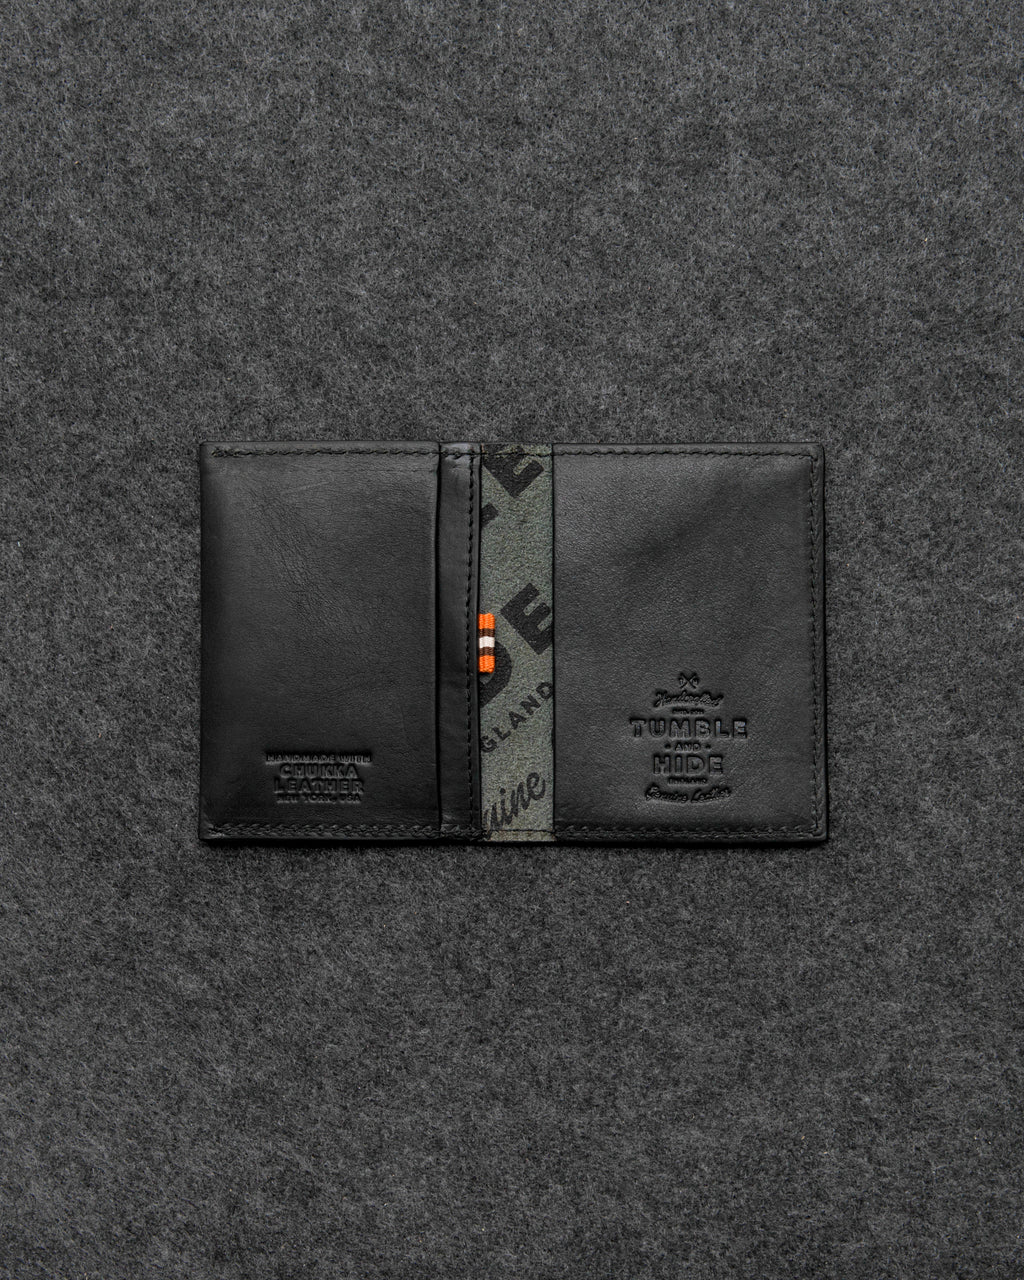 Black Chukka Leather Card Holder a